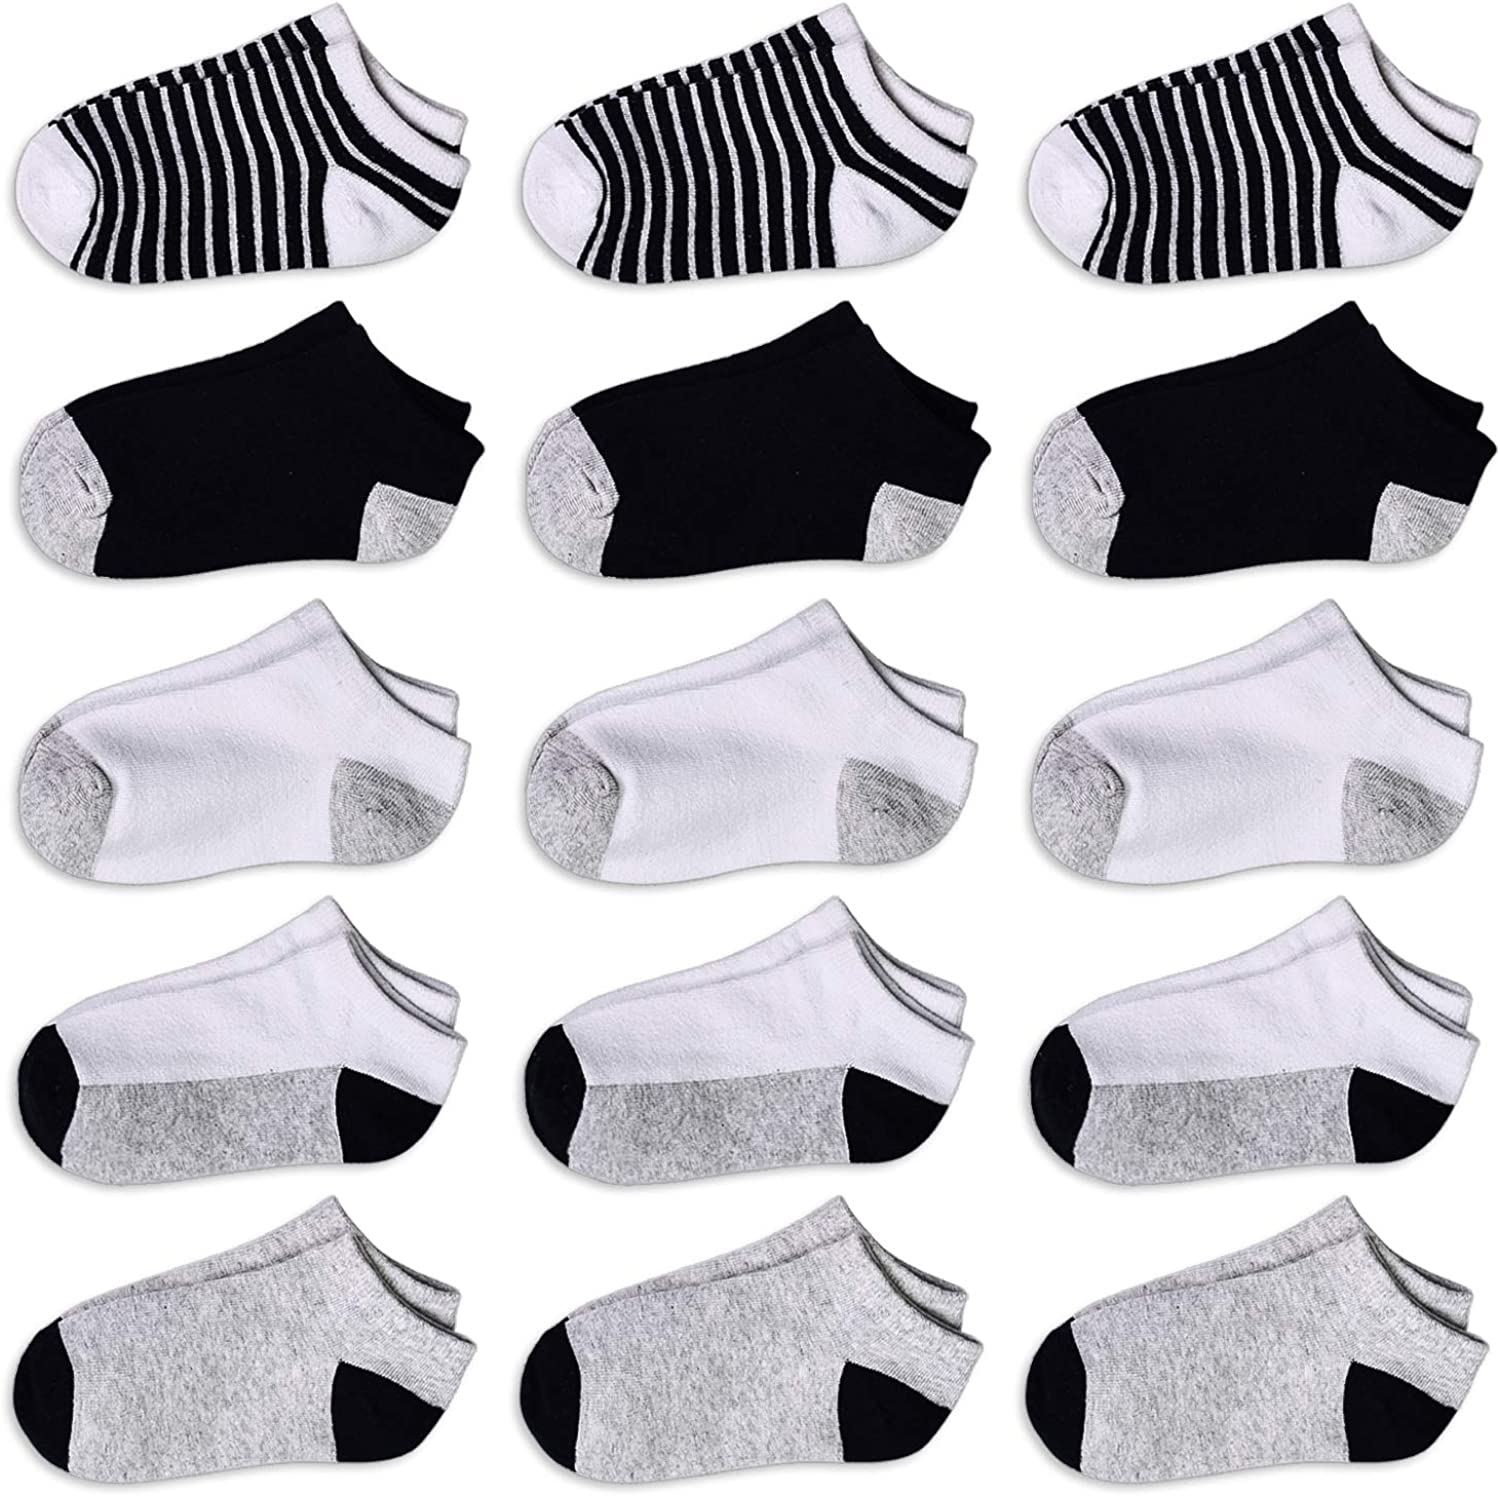 Toddler No Show Socks Kids Low Cut 15 Pairs Socks For Big Boys/Girls Half Cushion Athletic Ankle Exercise Socks 1-10T Kids